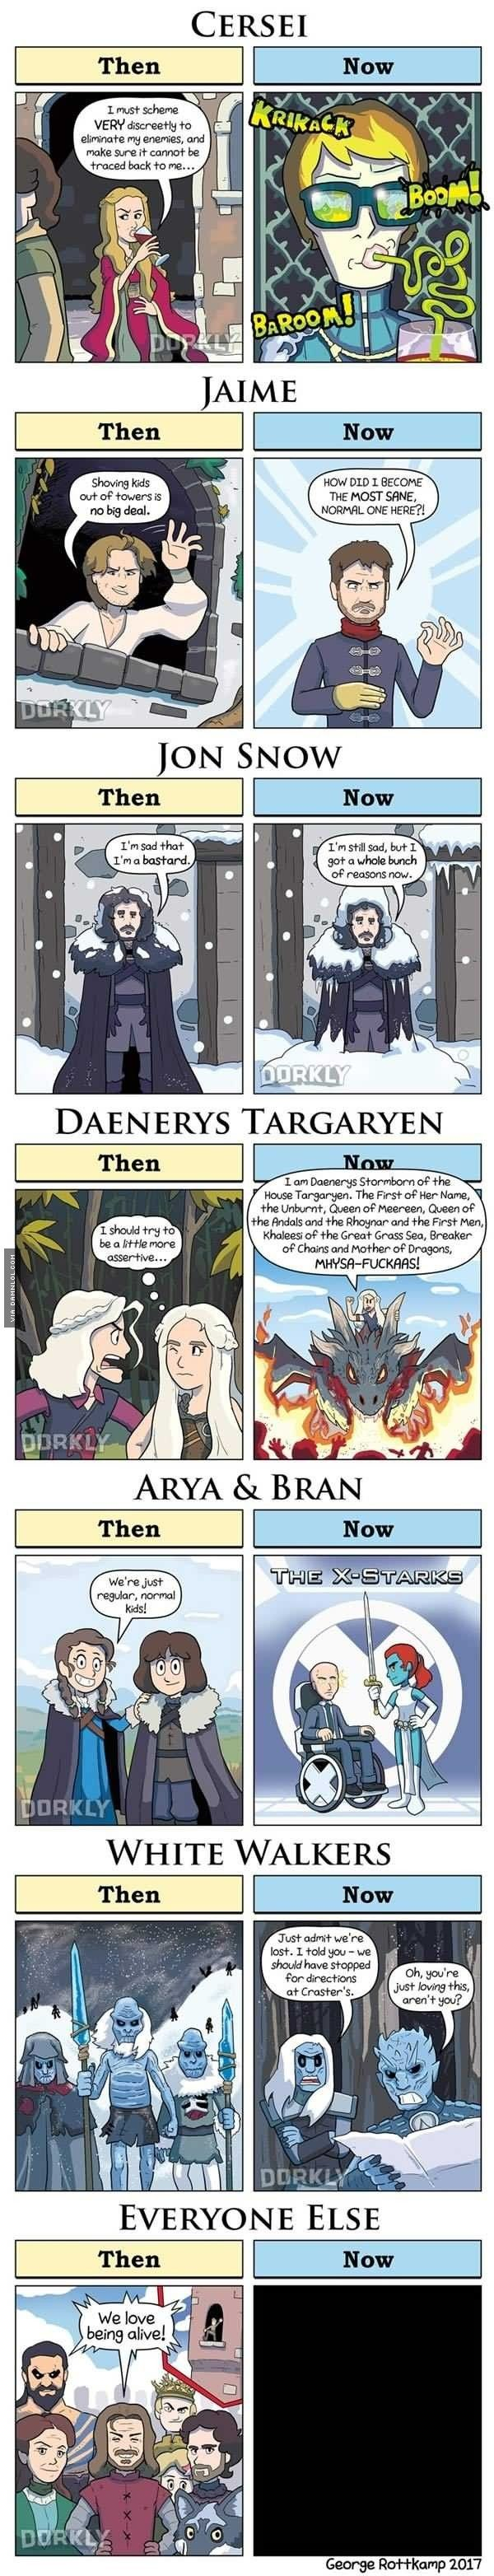 Yass Bran has become Xavier n Arya has became raven. Such good reference